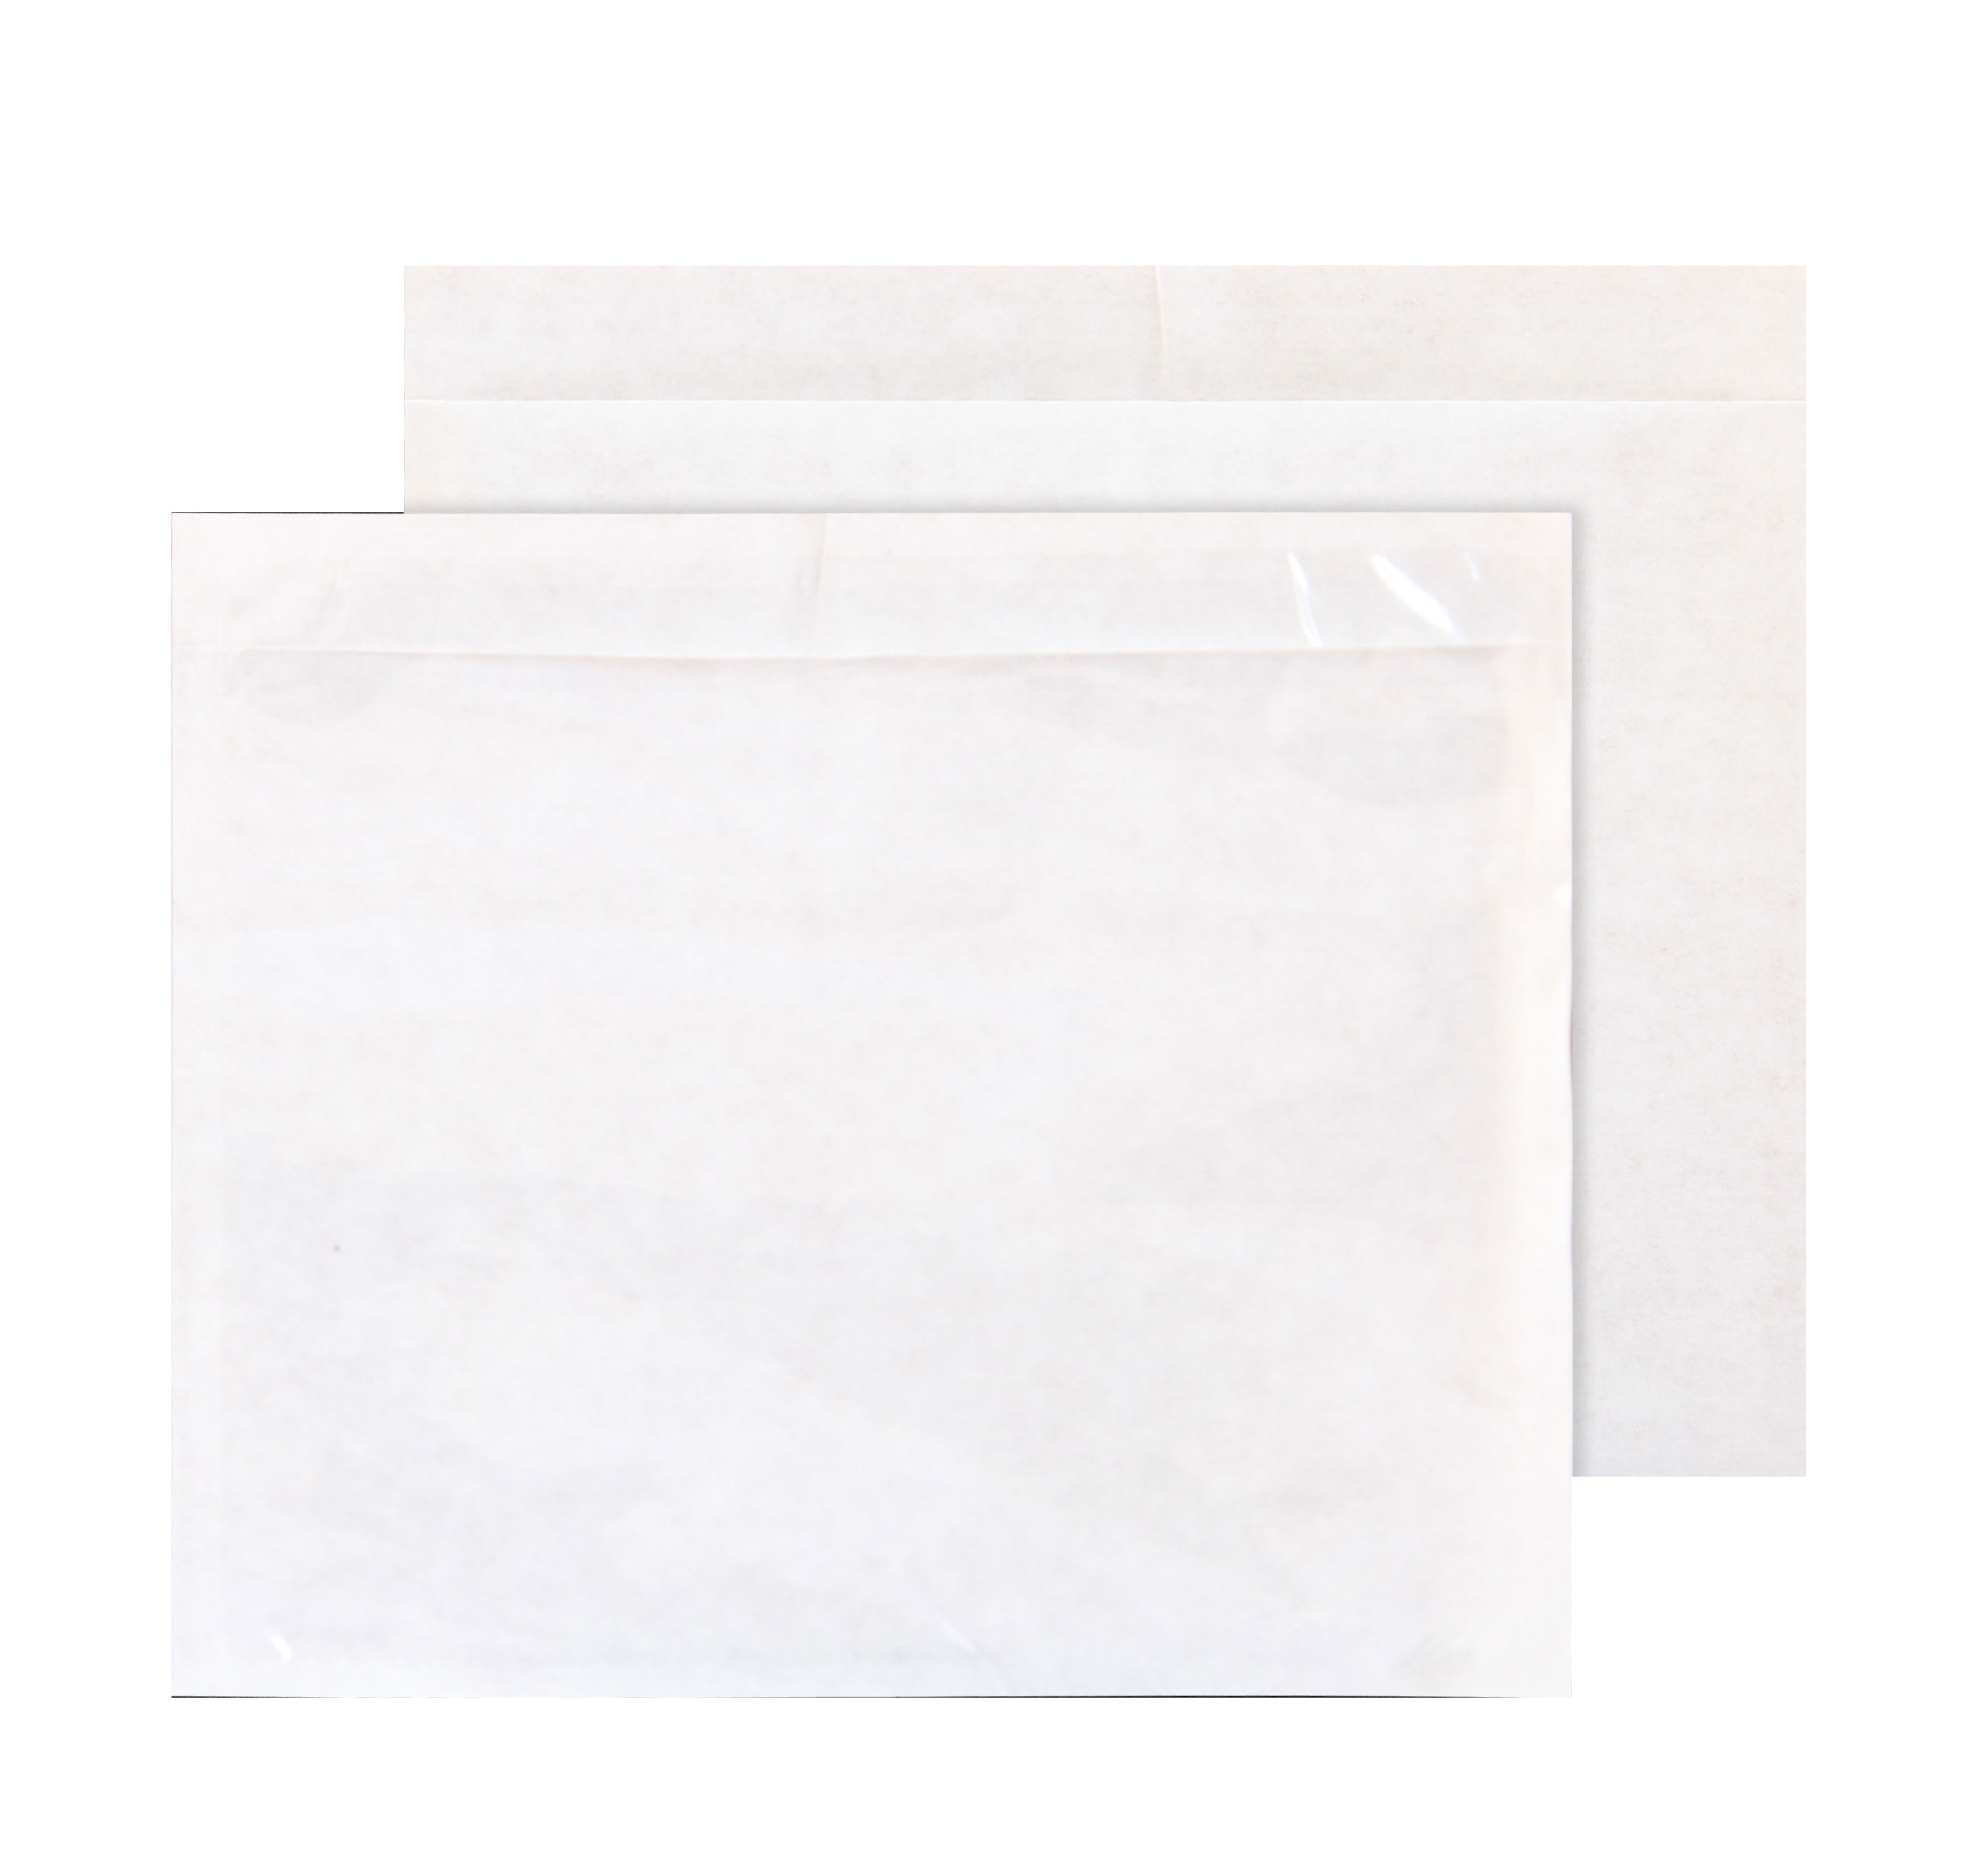 blake envelopes Blake A6 168x126mm Plain Document Enclosed Wallet Pk1000 Pde20 - AD01